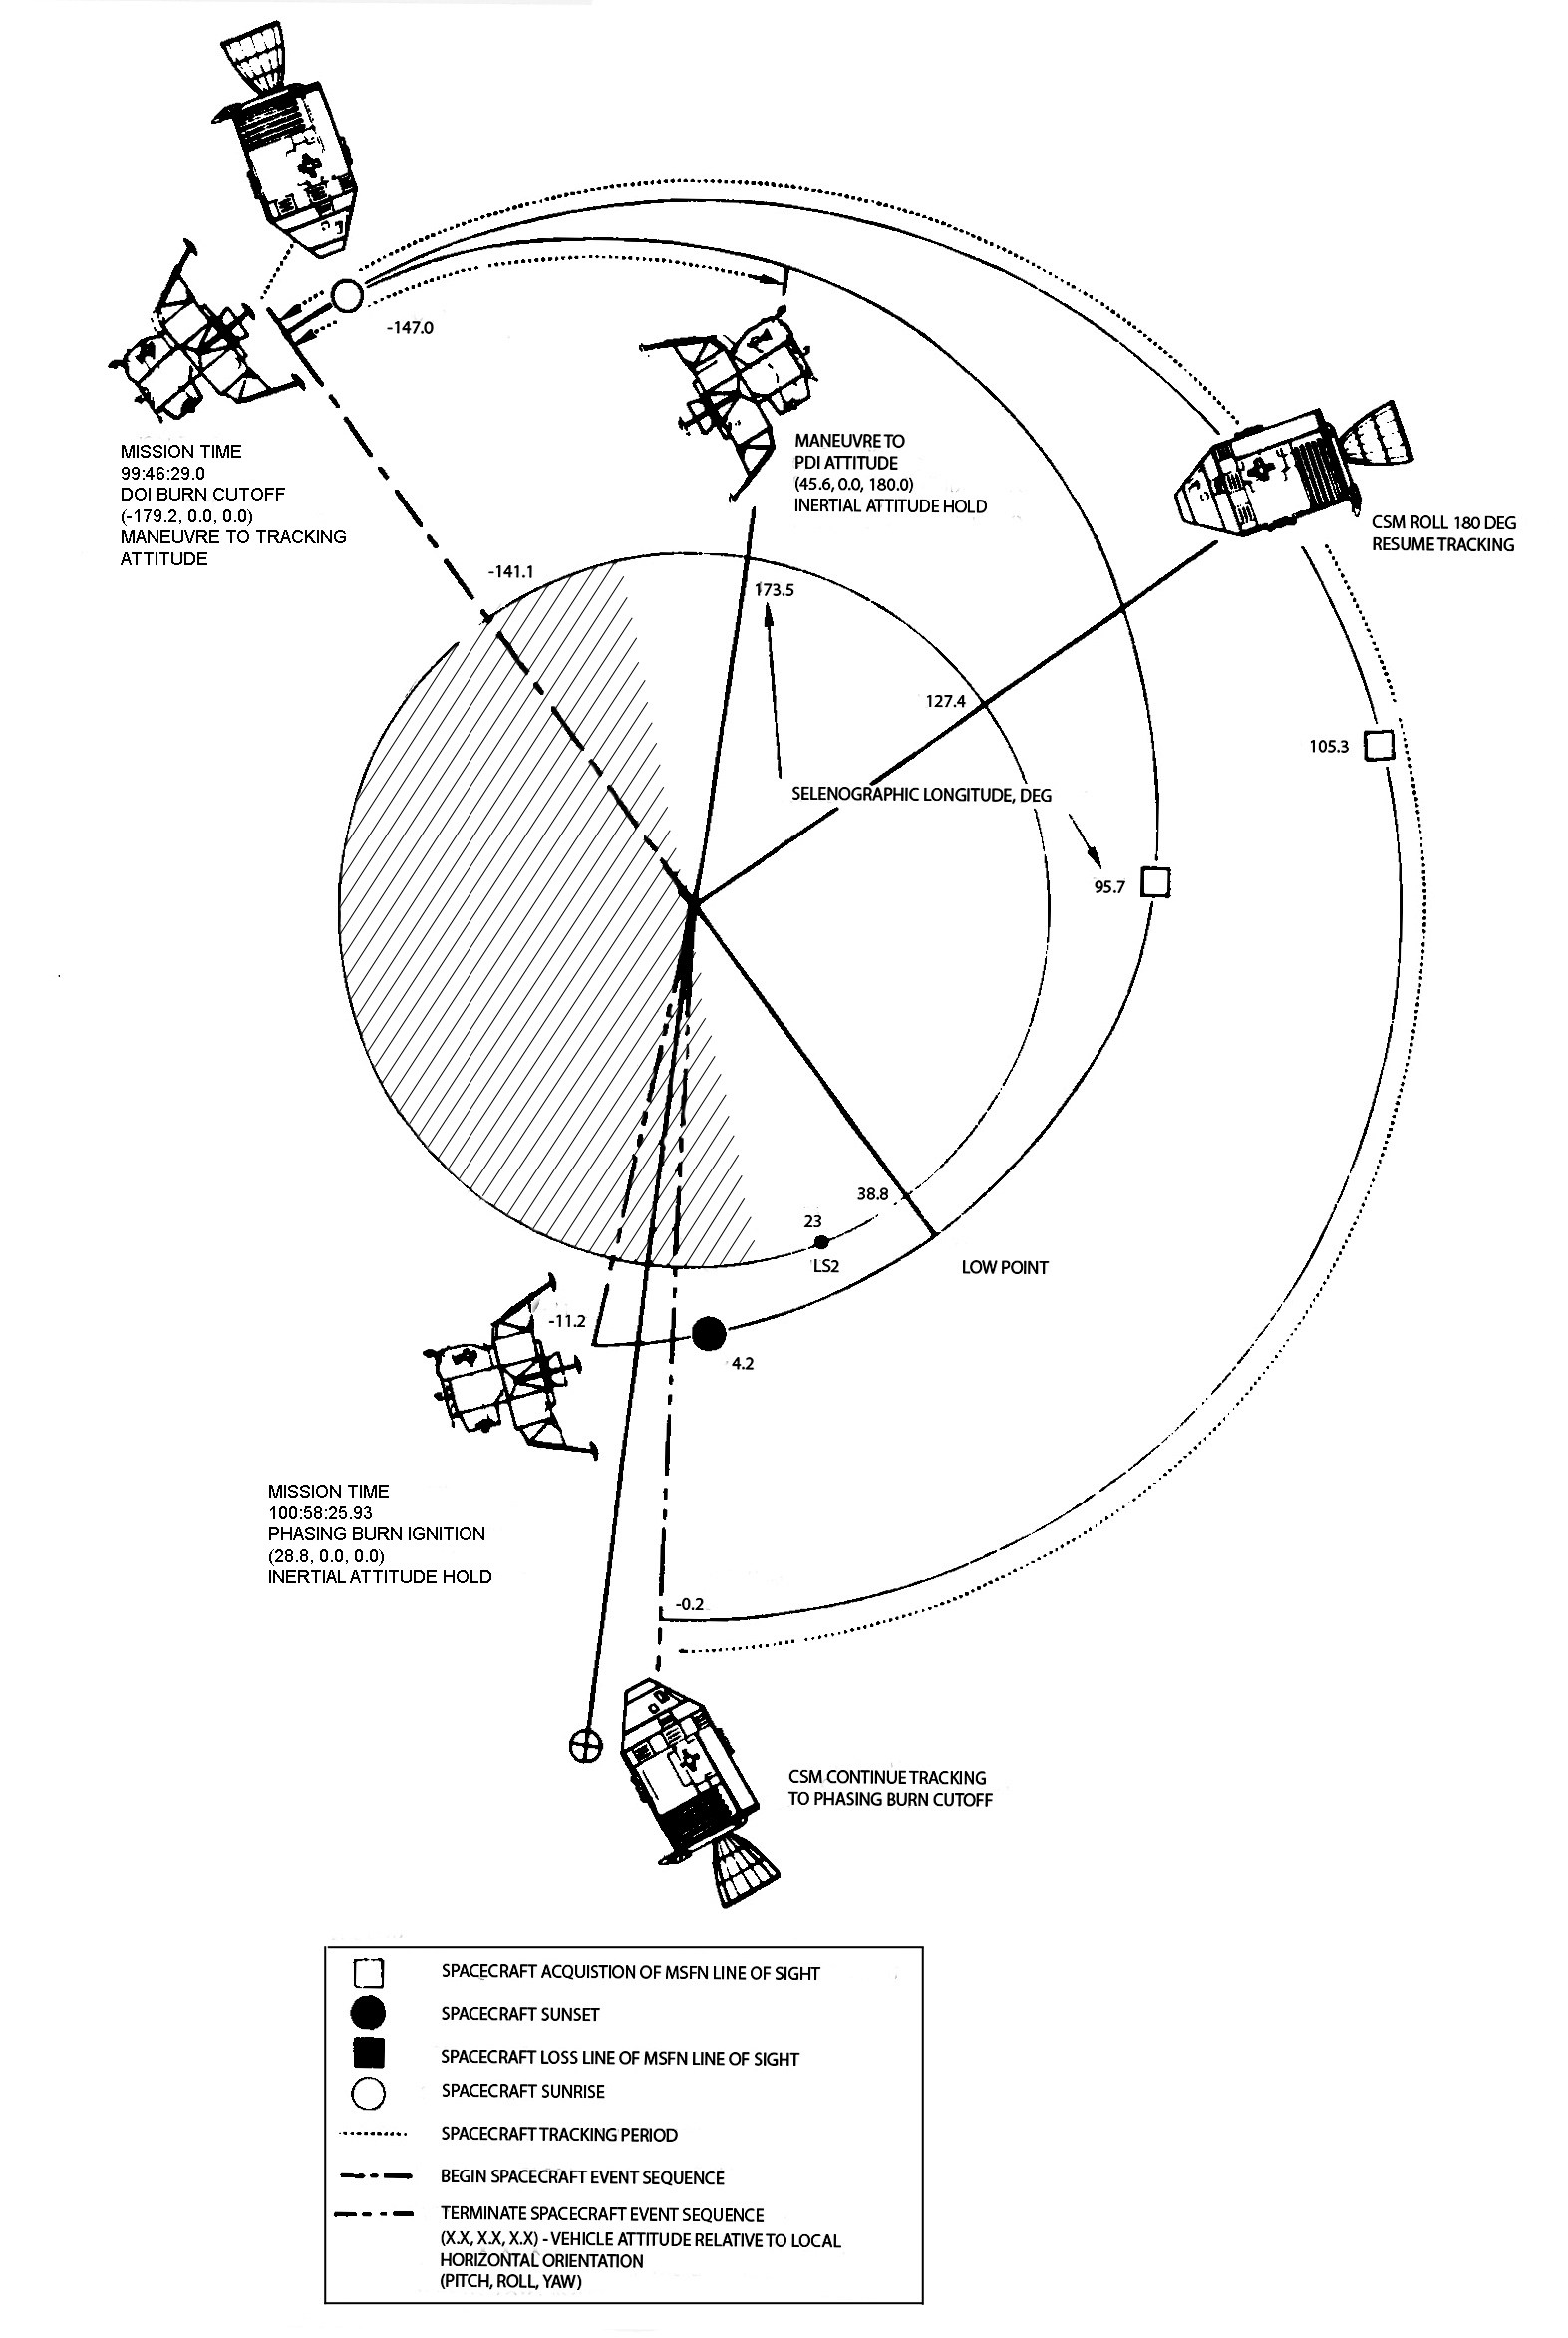 apollo 10 flight journal day 5 part 19 we is down among them Plane Mod 1.5.2 doi to phasing